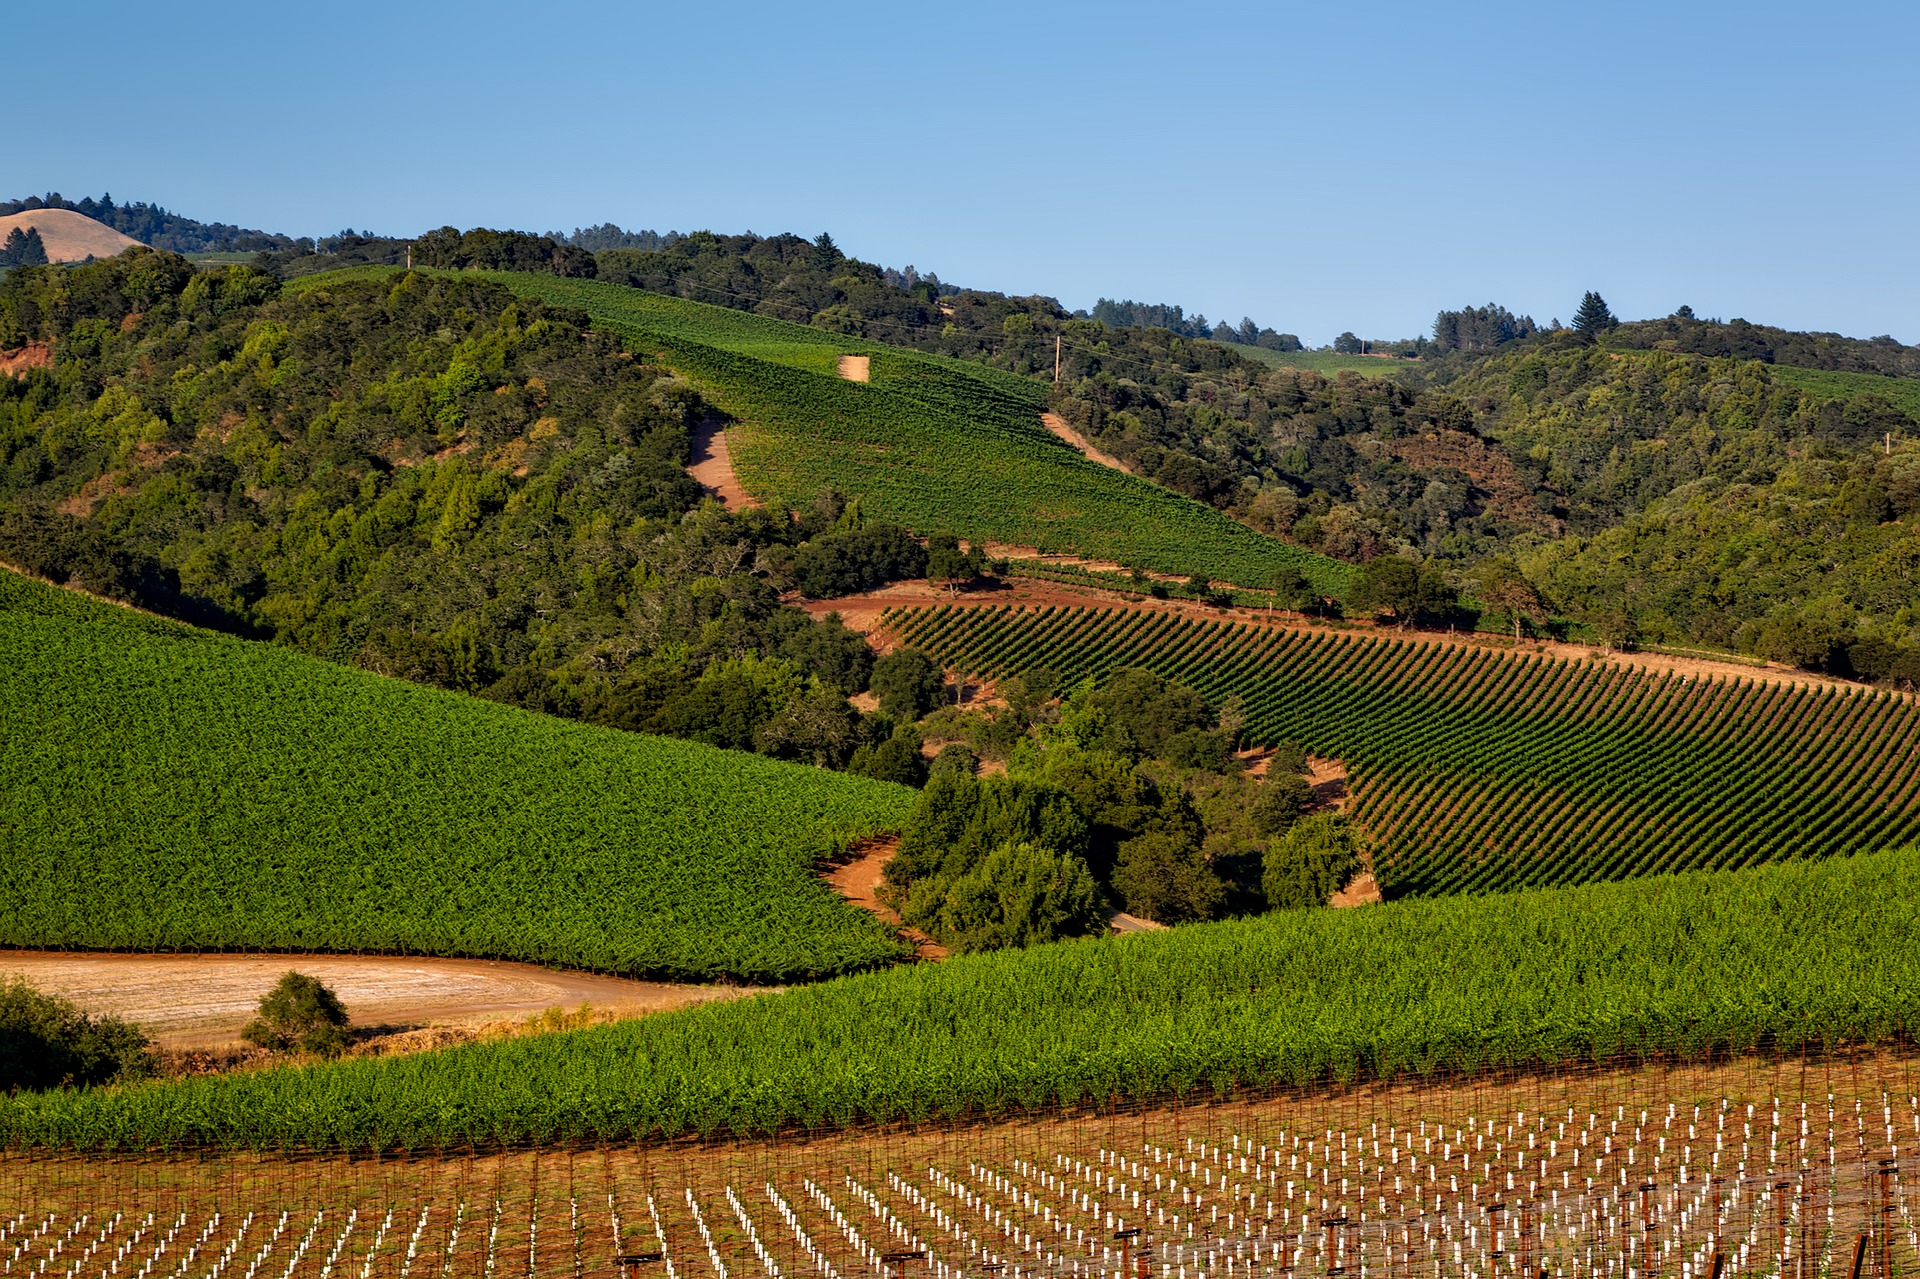 Rolling hills carpeted with vineyards.